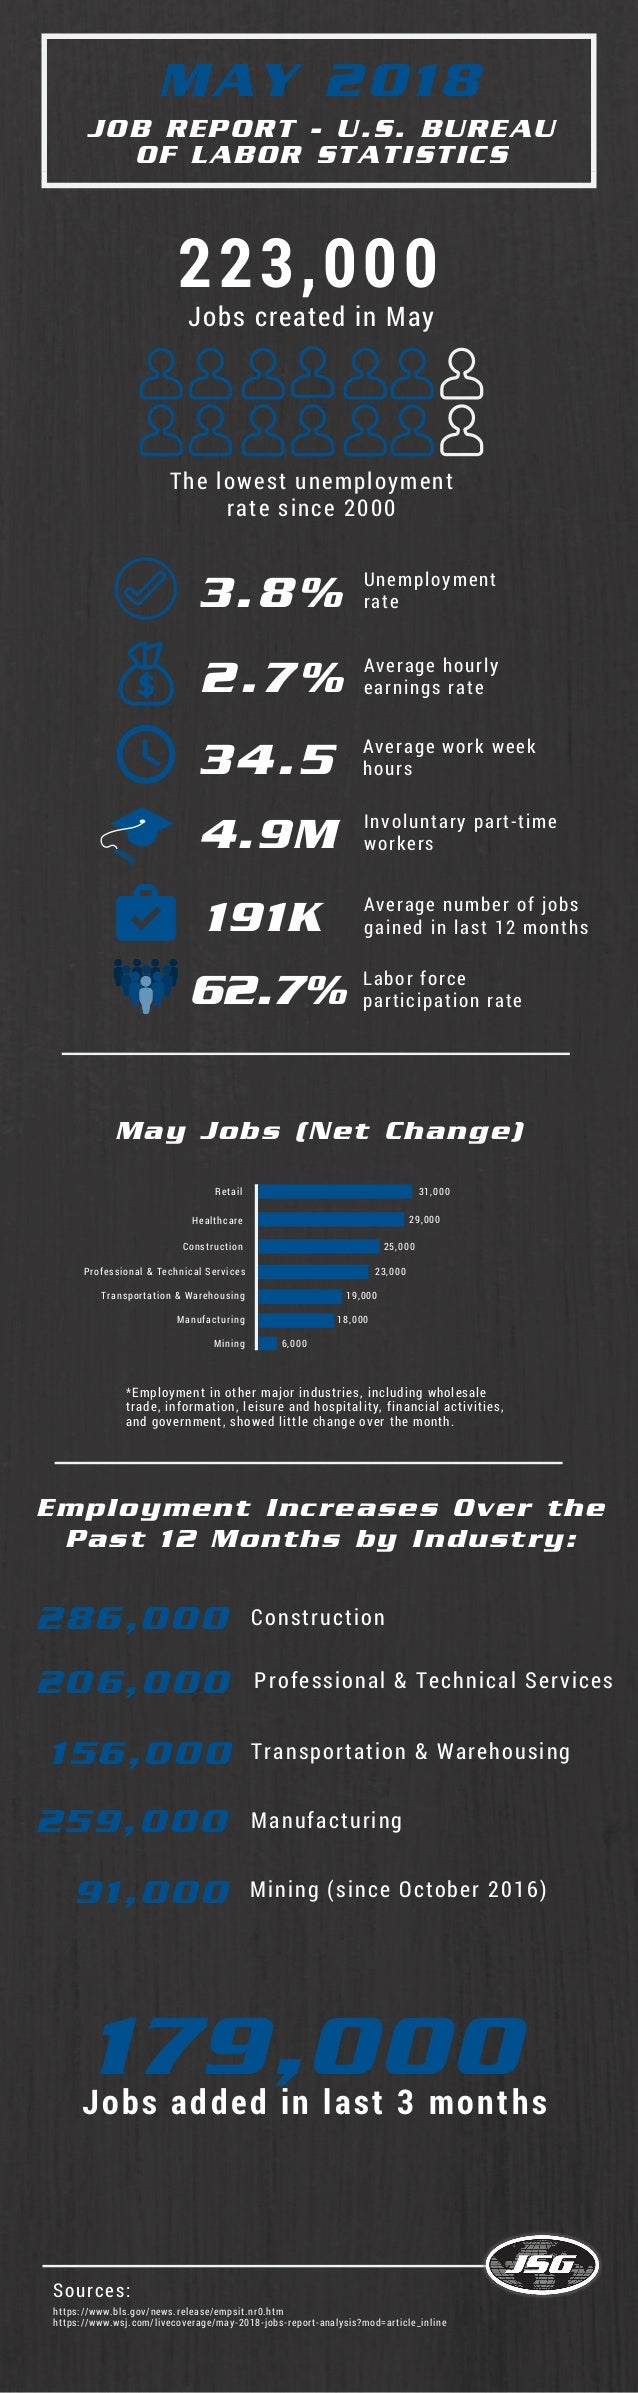 MAY 2018 JOB REPORT - U.S. BUREAU OF LABOR STATISTICS Employment Increases Over the Past 12 Months by Industry: 223,000 Jo...